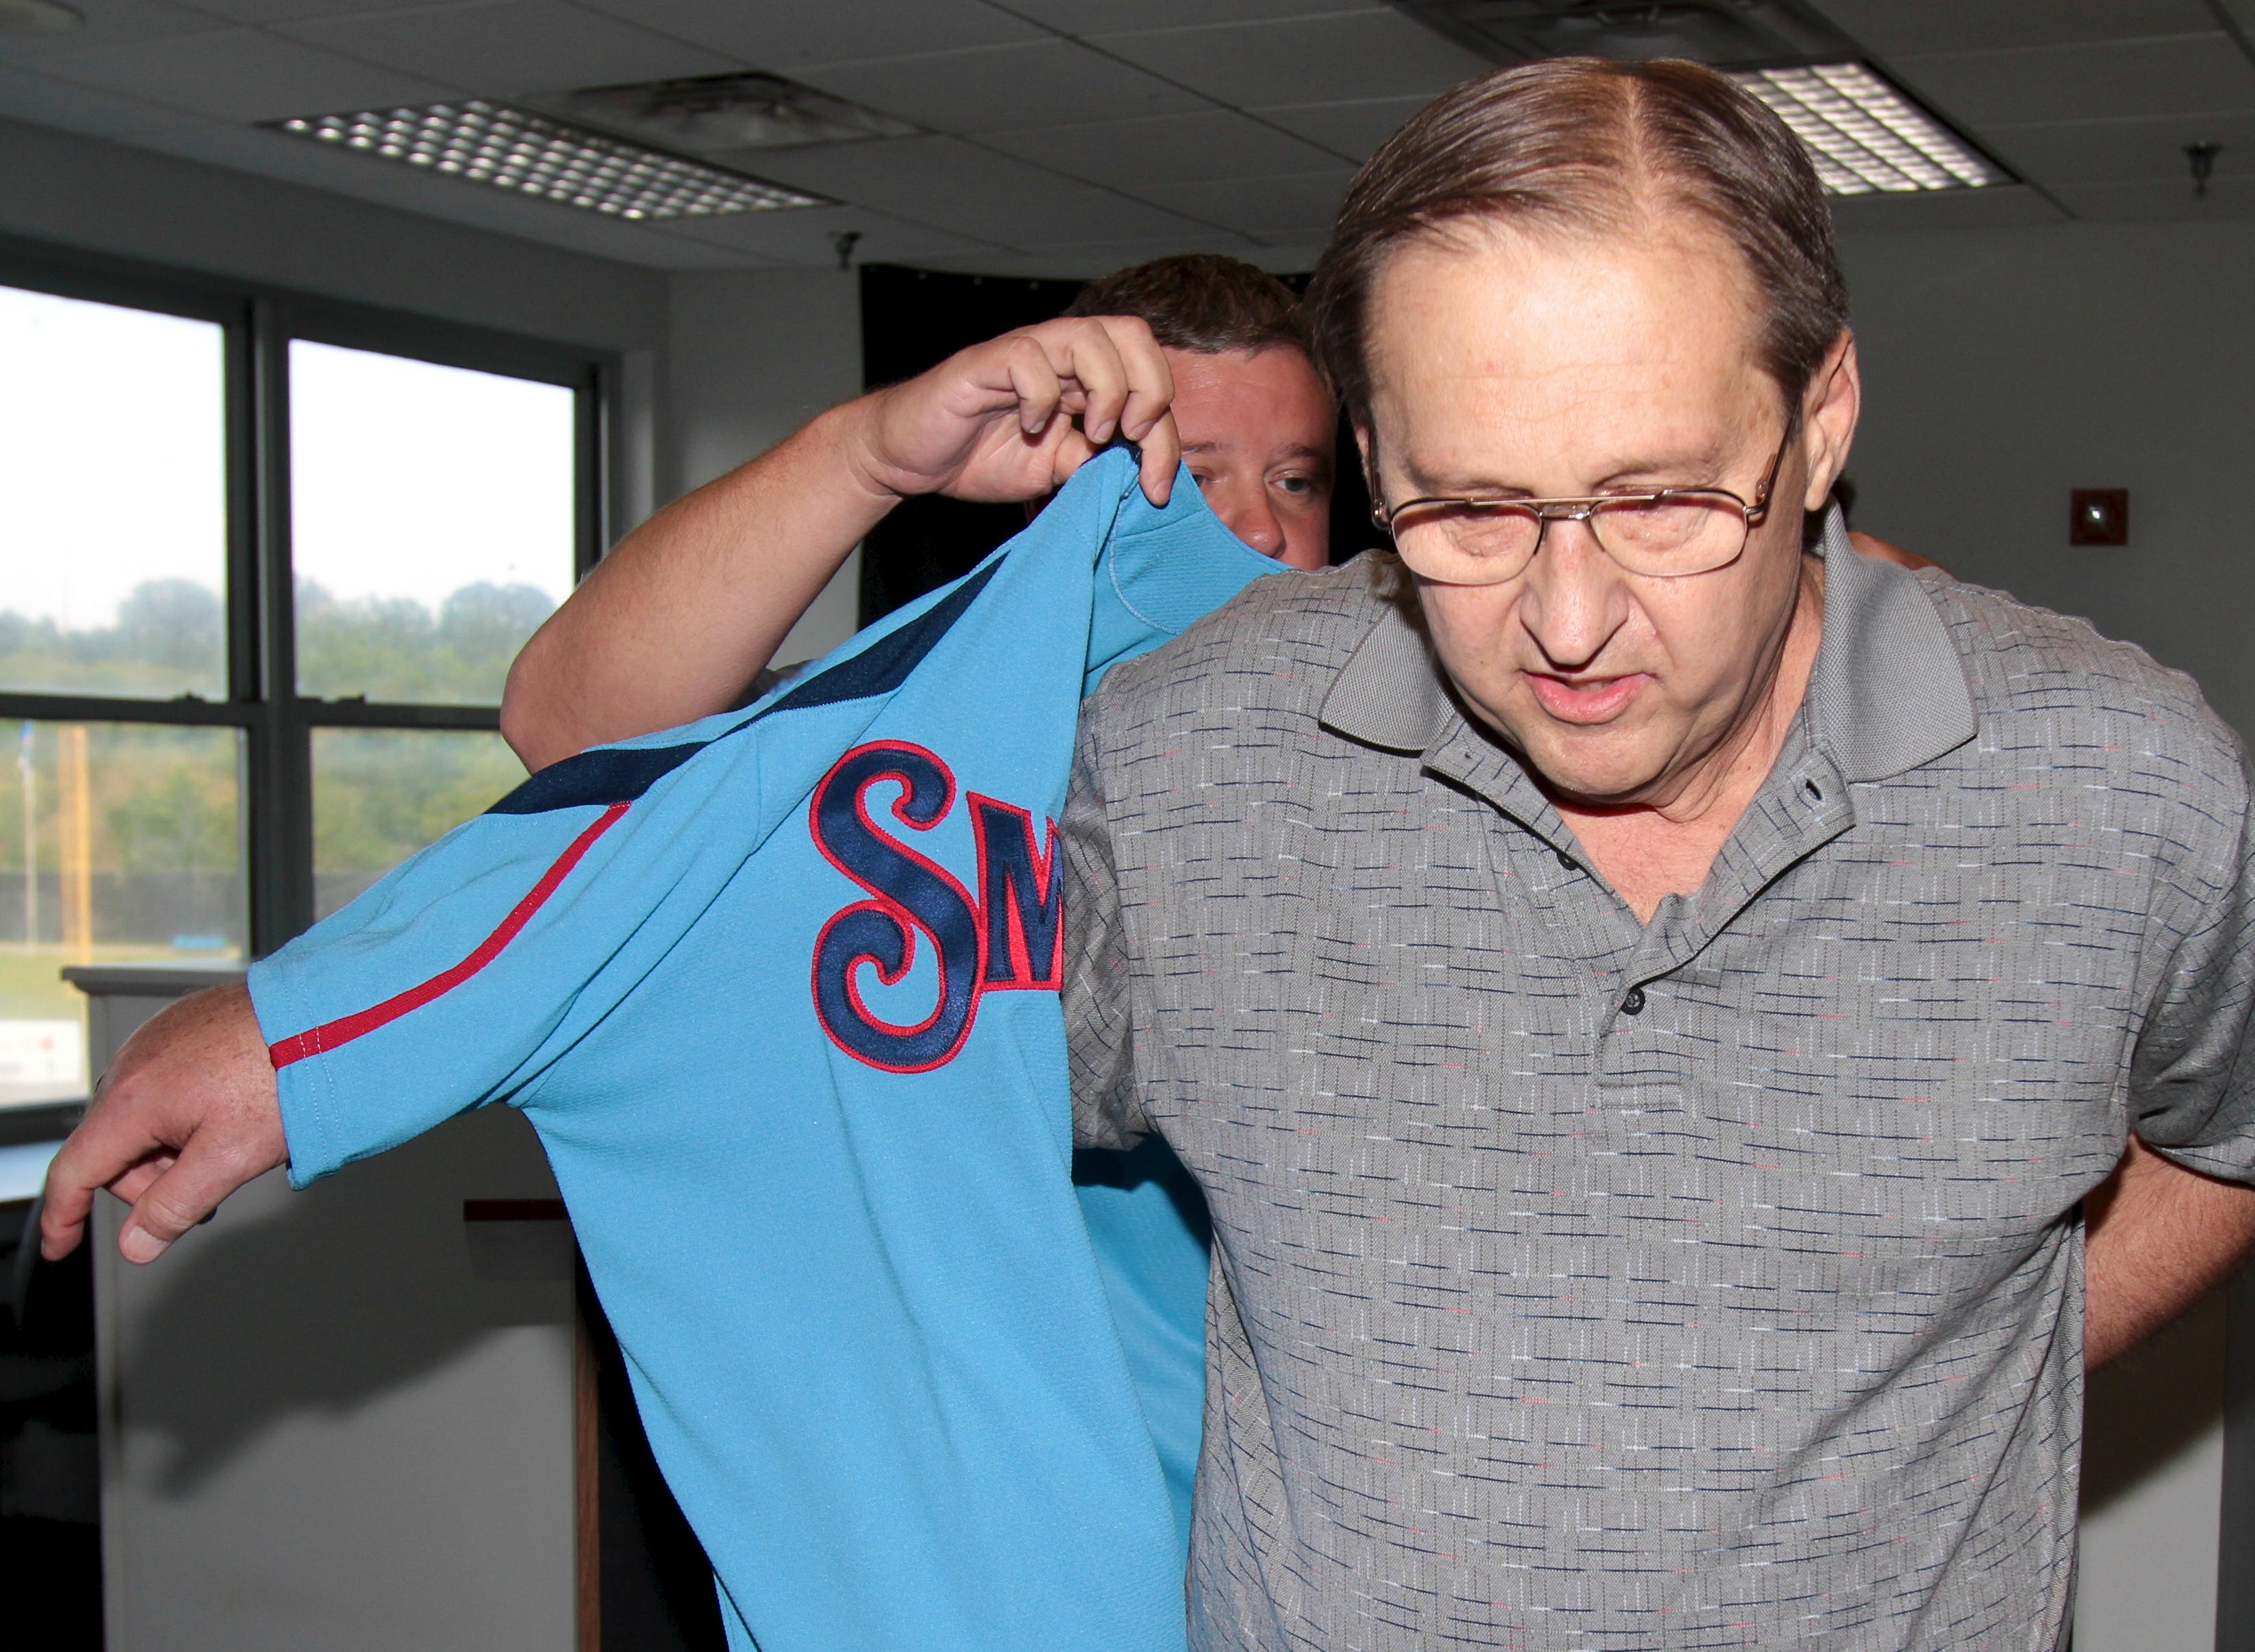 Nick Gates, front, is given a Tennessee Smokies jersey from Smokies general manager Brian Cox on Saturday, August 28, 2010 at Smokies Stadium. The press box at Smokies Stadium was named the Nick Gates Press Row.